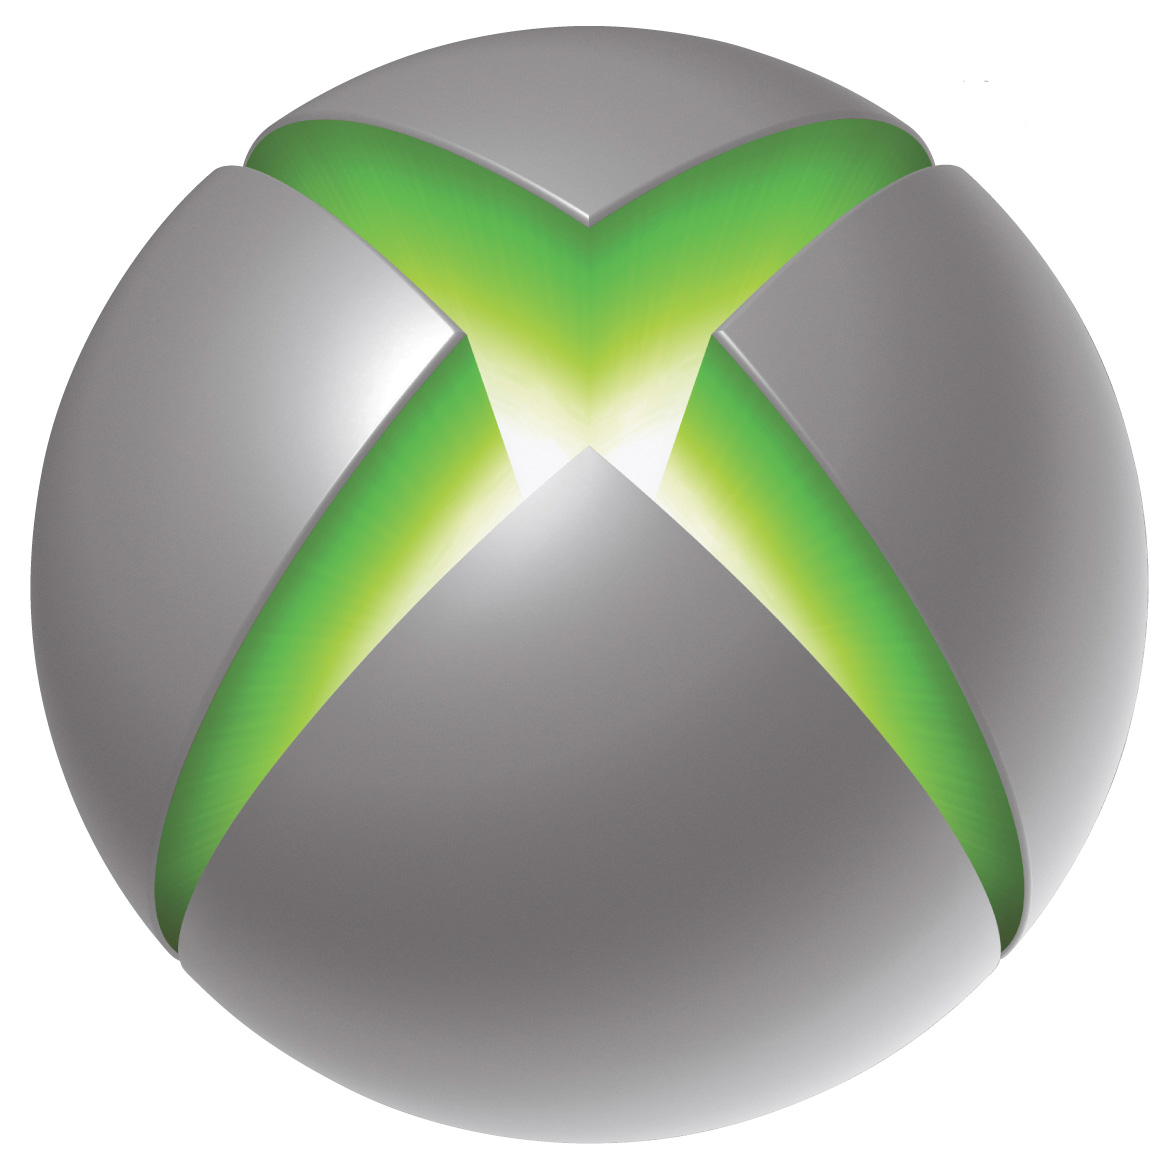 xbox360 iso extract version 2 7 0 via skydrive Xbox 360 Live Logo Xbox One Logo